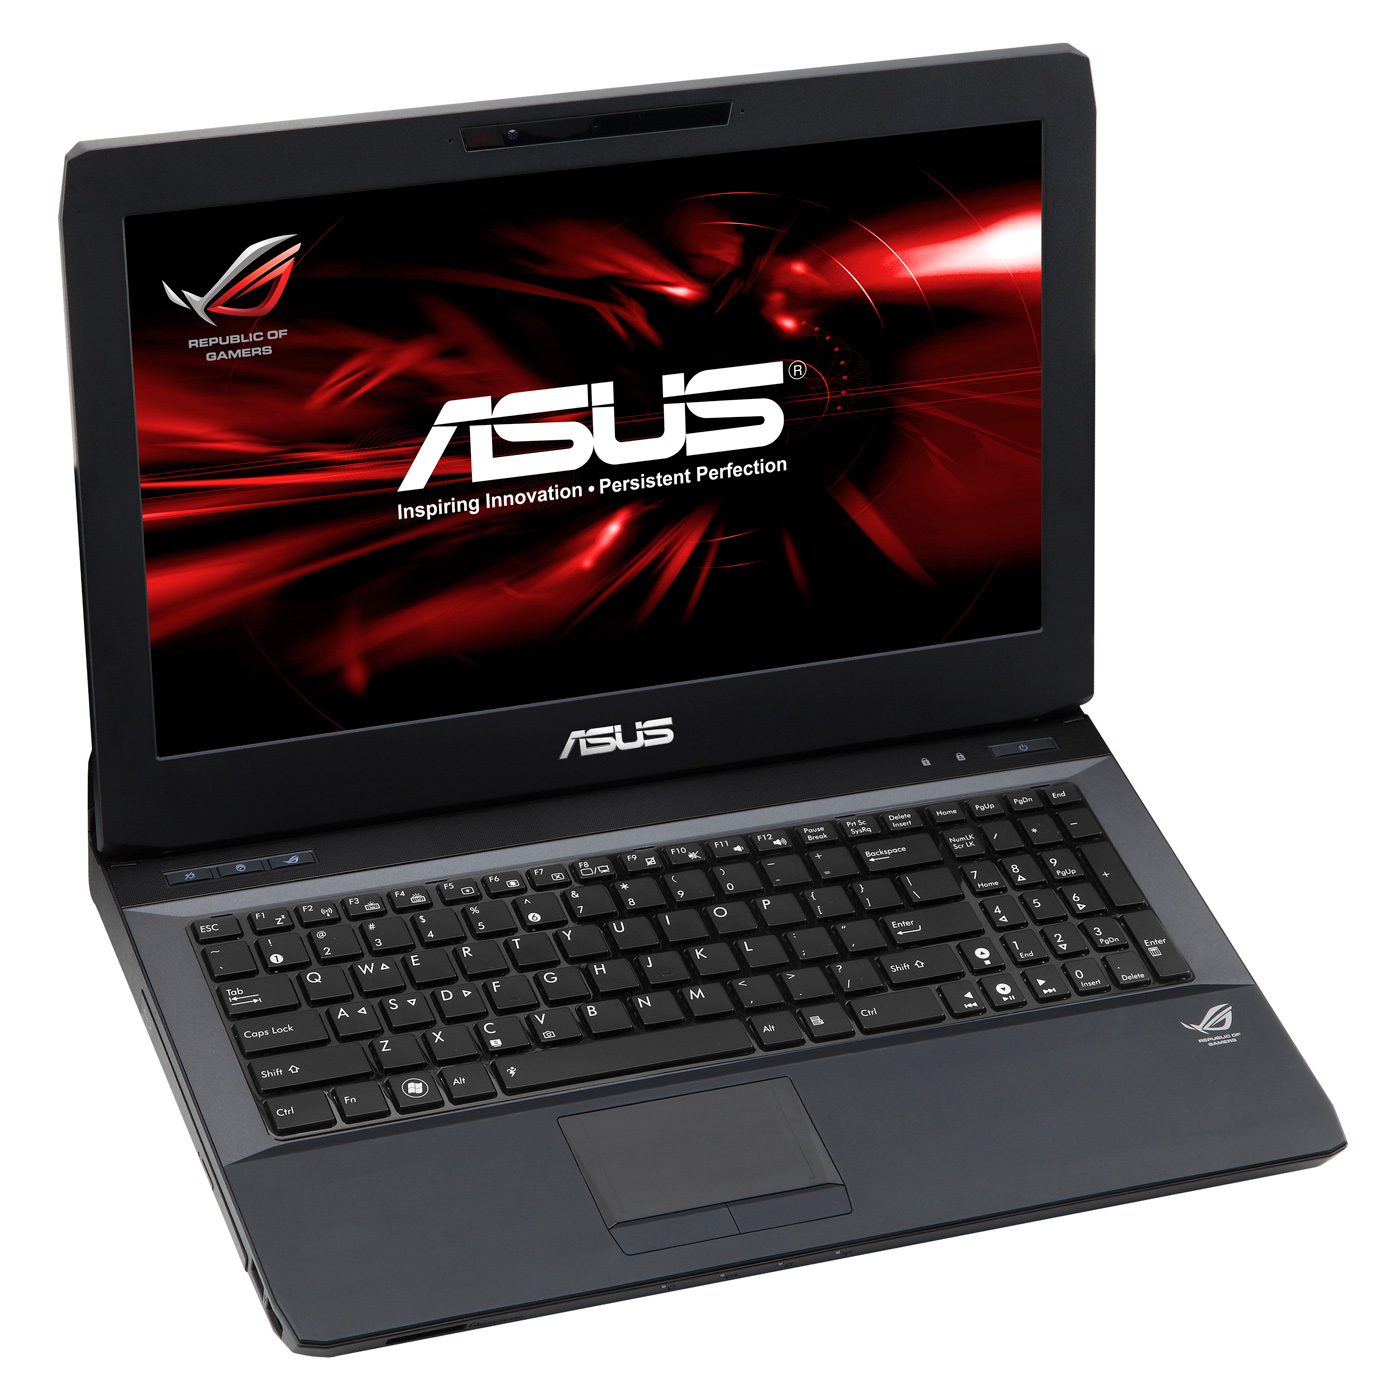 "PC portable ASUS G53SX-S1177V Intel Core i7-2670QM 6 Go 1 To (2x 500 Go) 15.6"" LED NVIDIA GeForce GTX 560M Lecteur Blu-ray/Graveur DVD Wi-Fi N/BT Webcam Windows 7 Premium 64 bits (garantie constructeur 2 ans)"